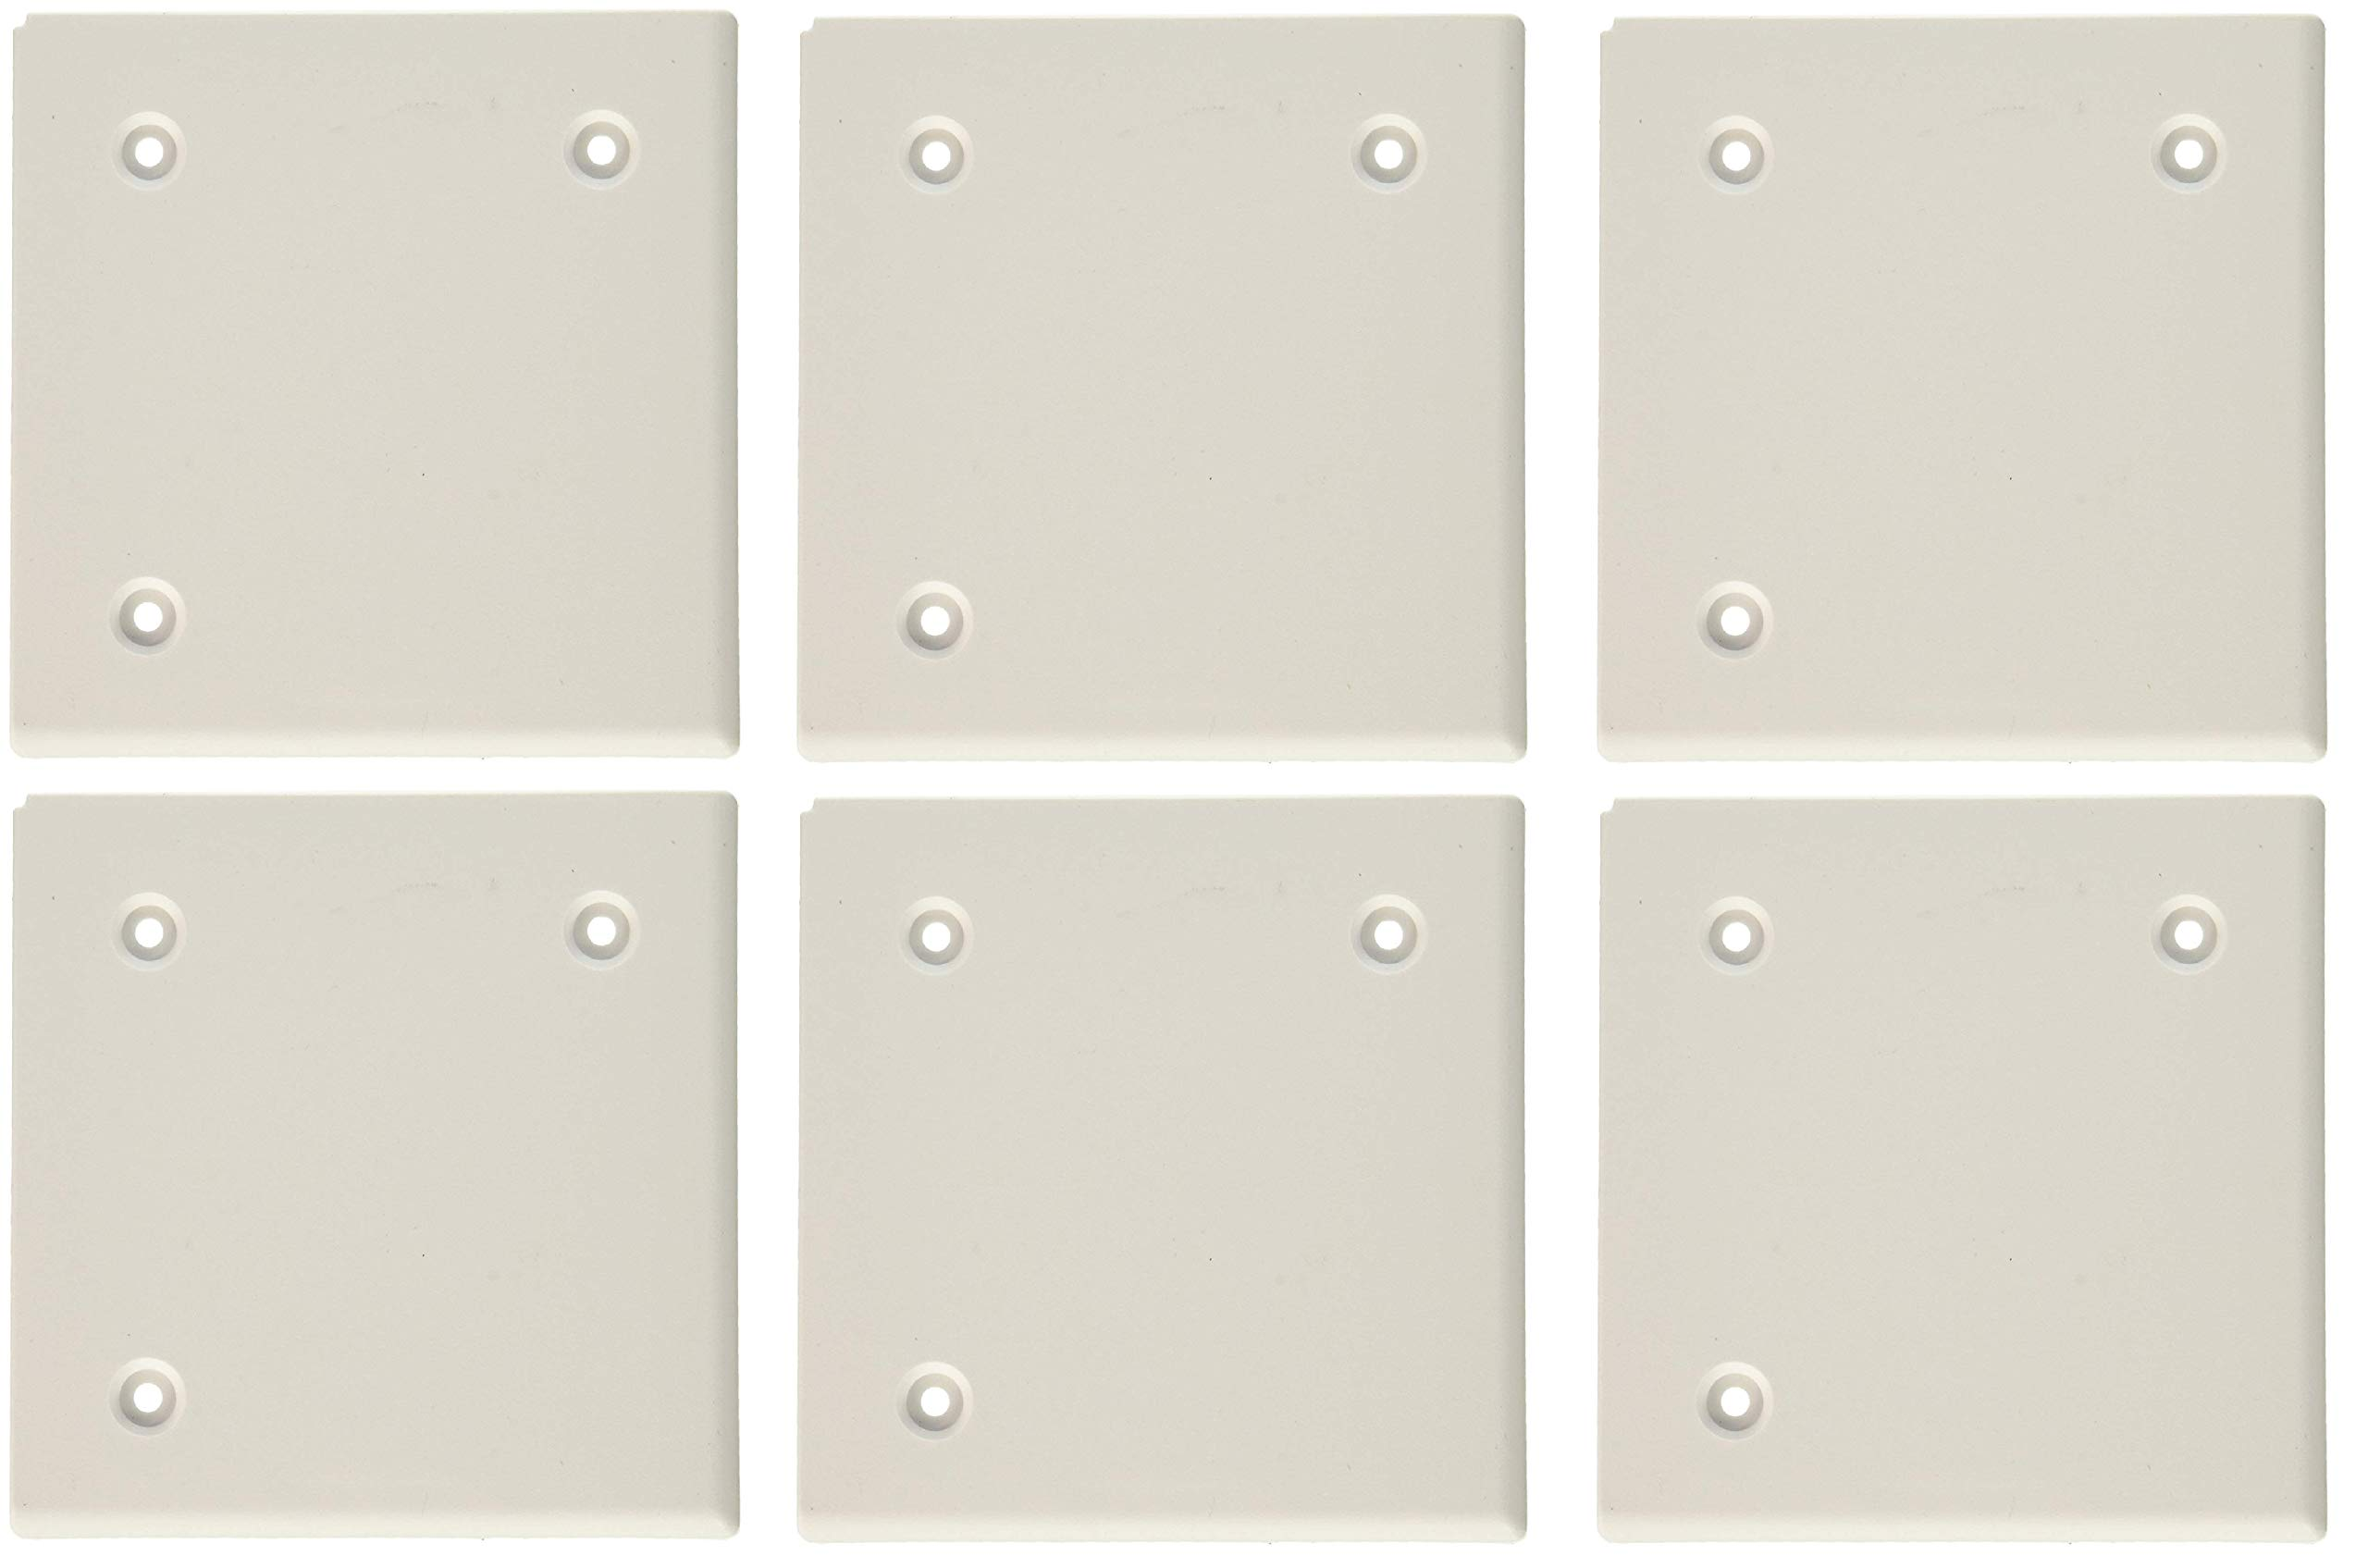 JR Products 547 Polar White 4-1/2'' Square Slide-Out Cap (6)